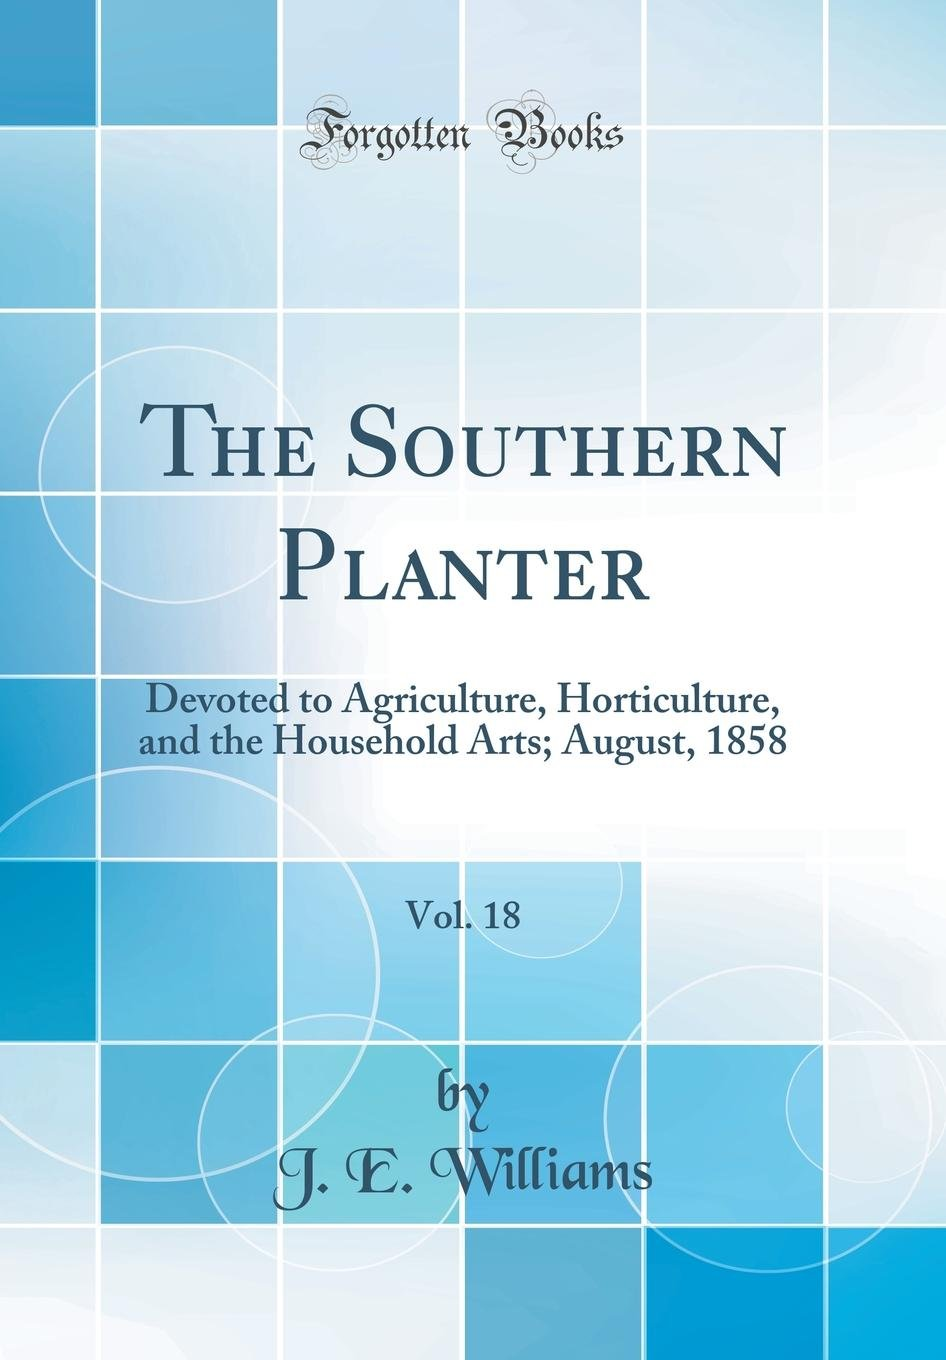 The Southern Planter, Vol. 18: Devoted to Agriculture, Horticulture, and the Household Arts; August, 1858 (Classic Reprint) PDF